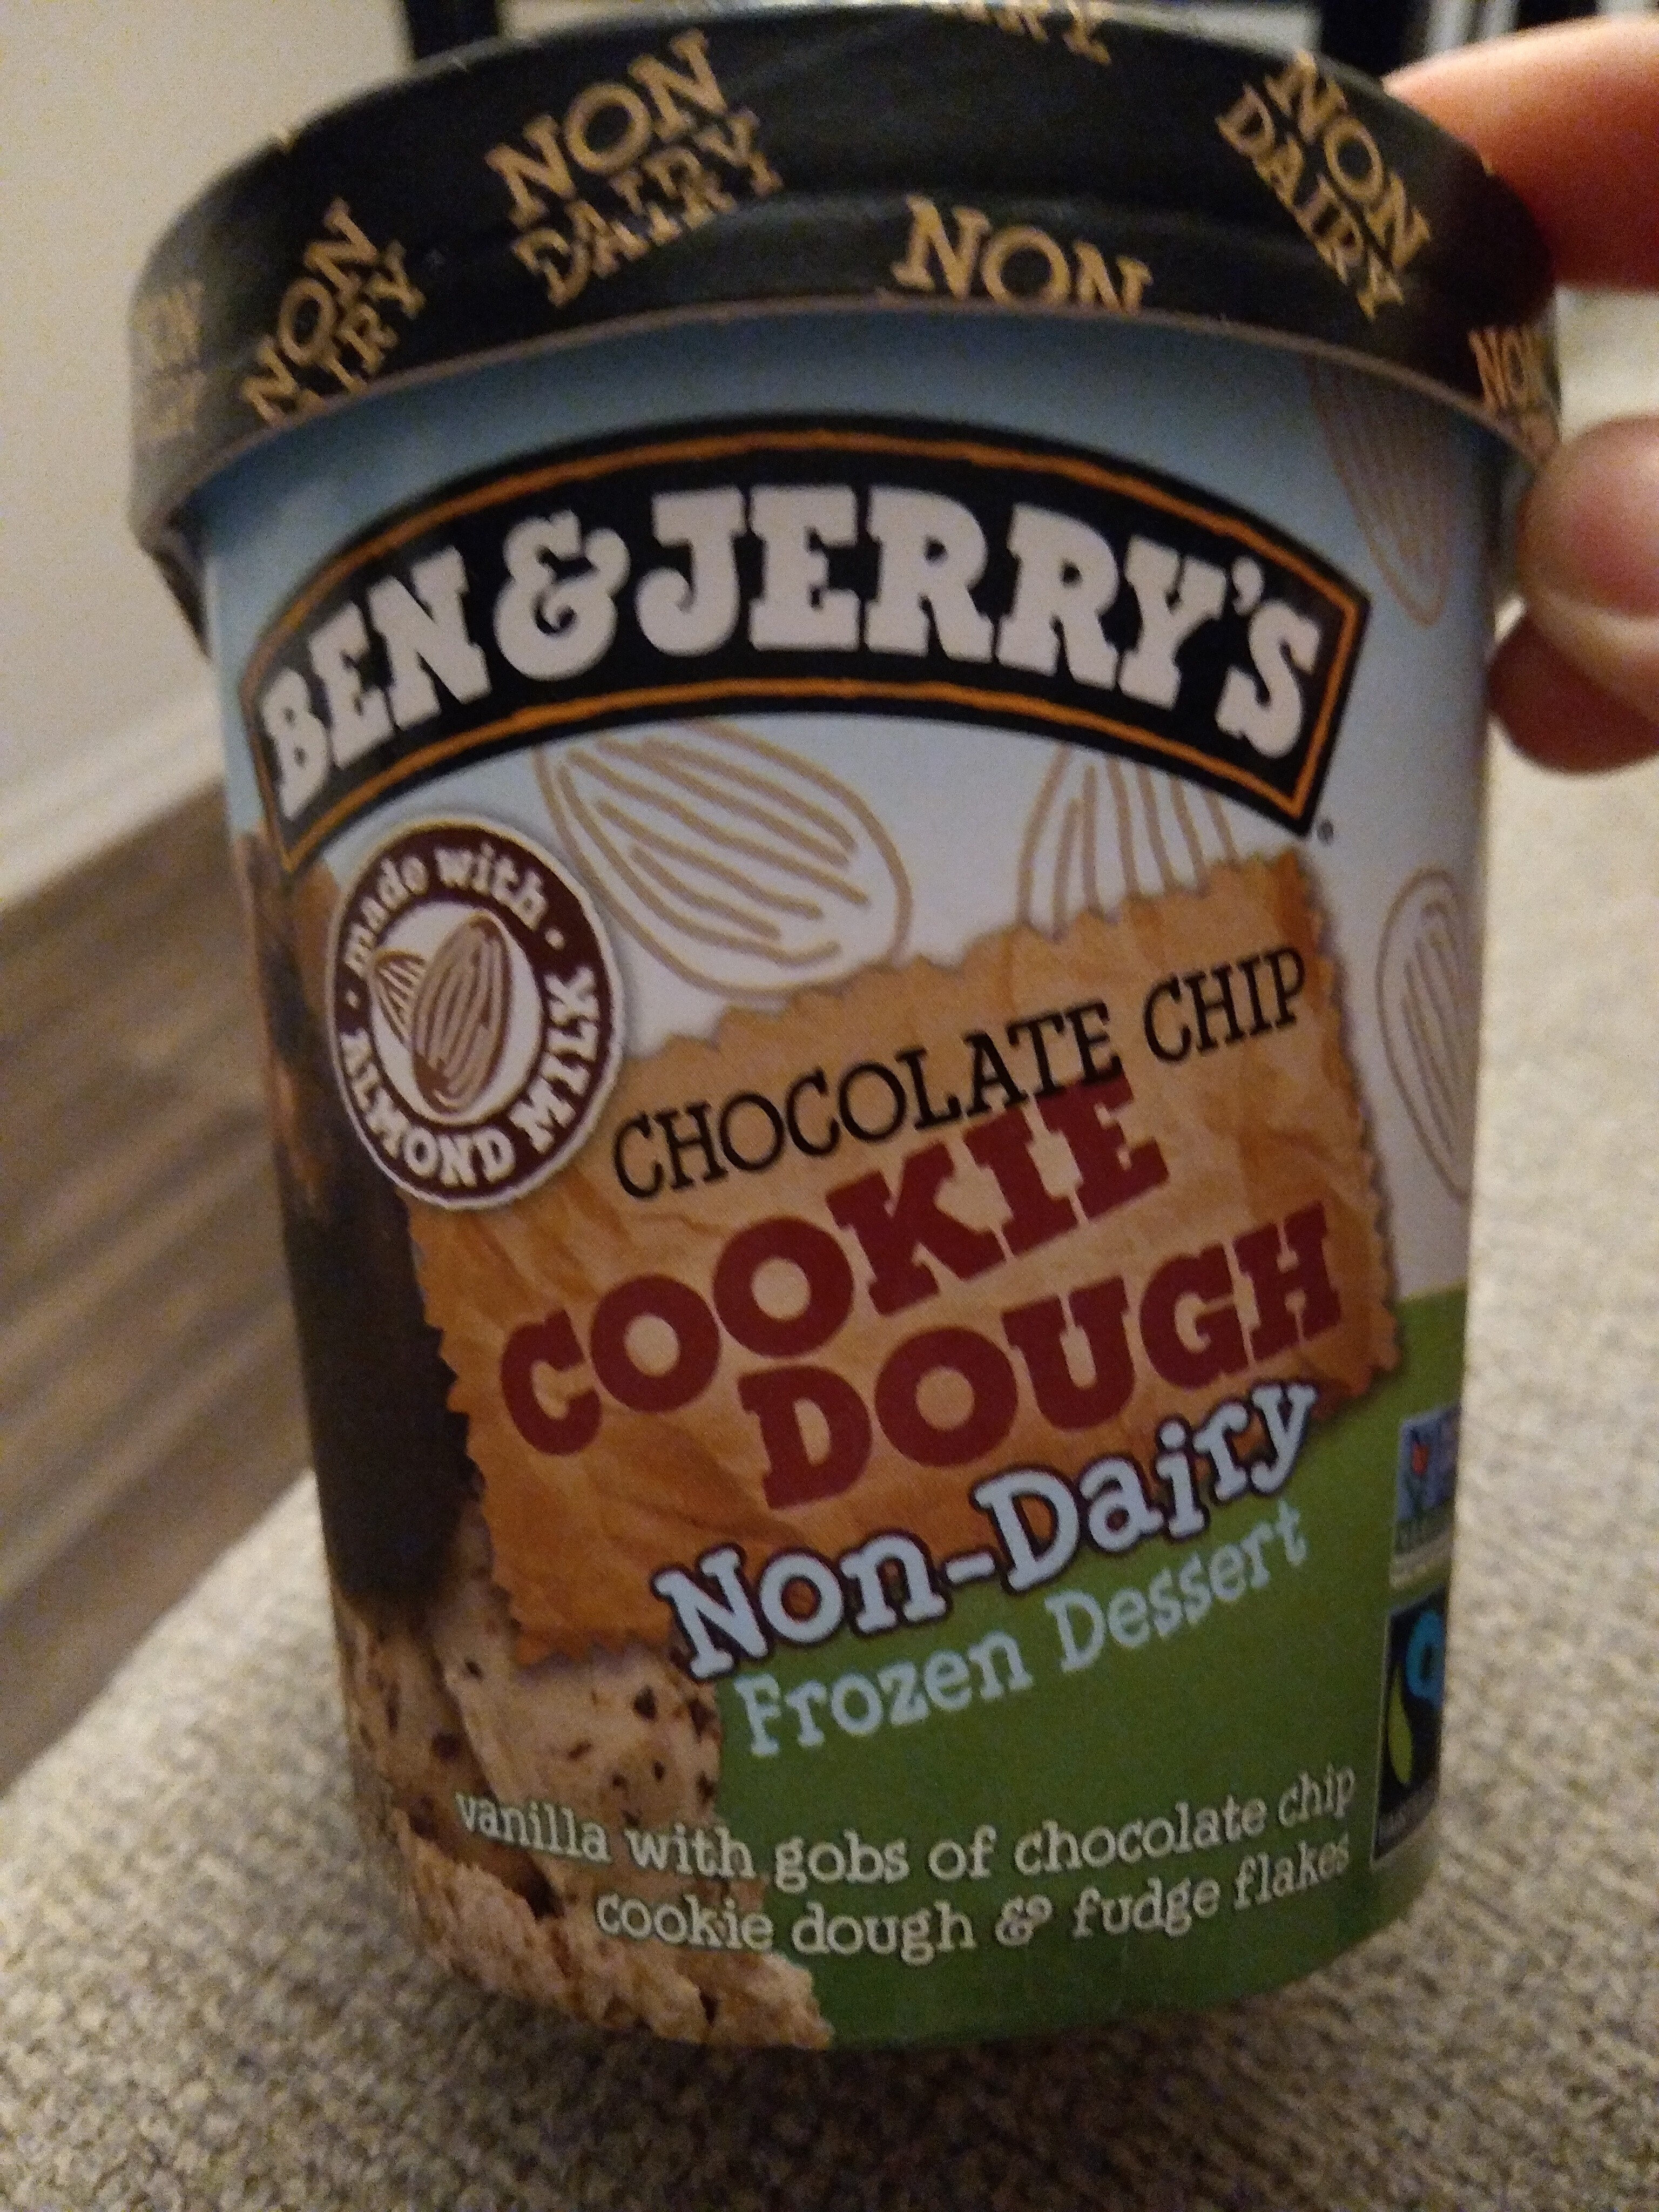 Chocolate chip cookie dough vanilla with gobs of chocolate chip cookie dough & fudge flakes non-dairy frozen dessert, chocolate chip cookie dough - Product - en